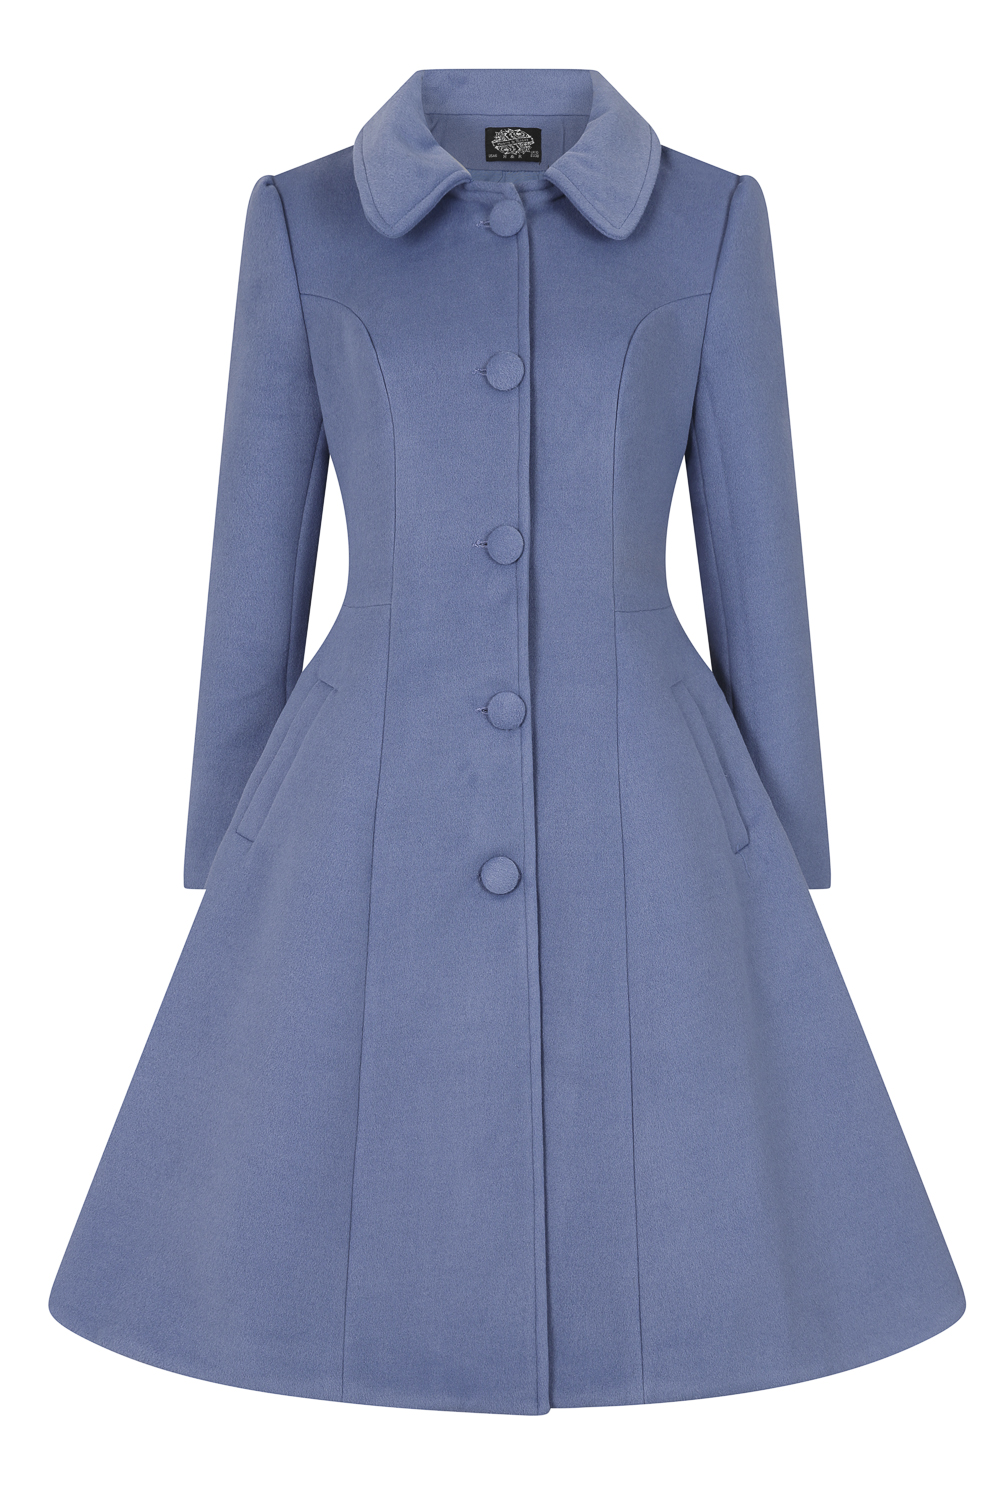 Esme Swing Coat